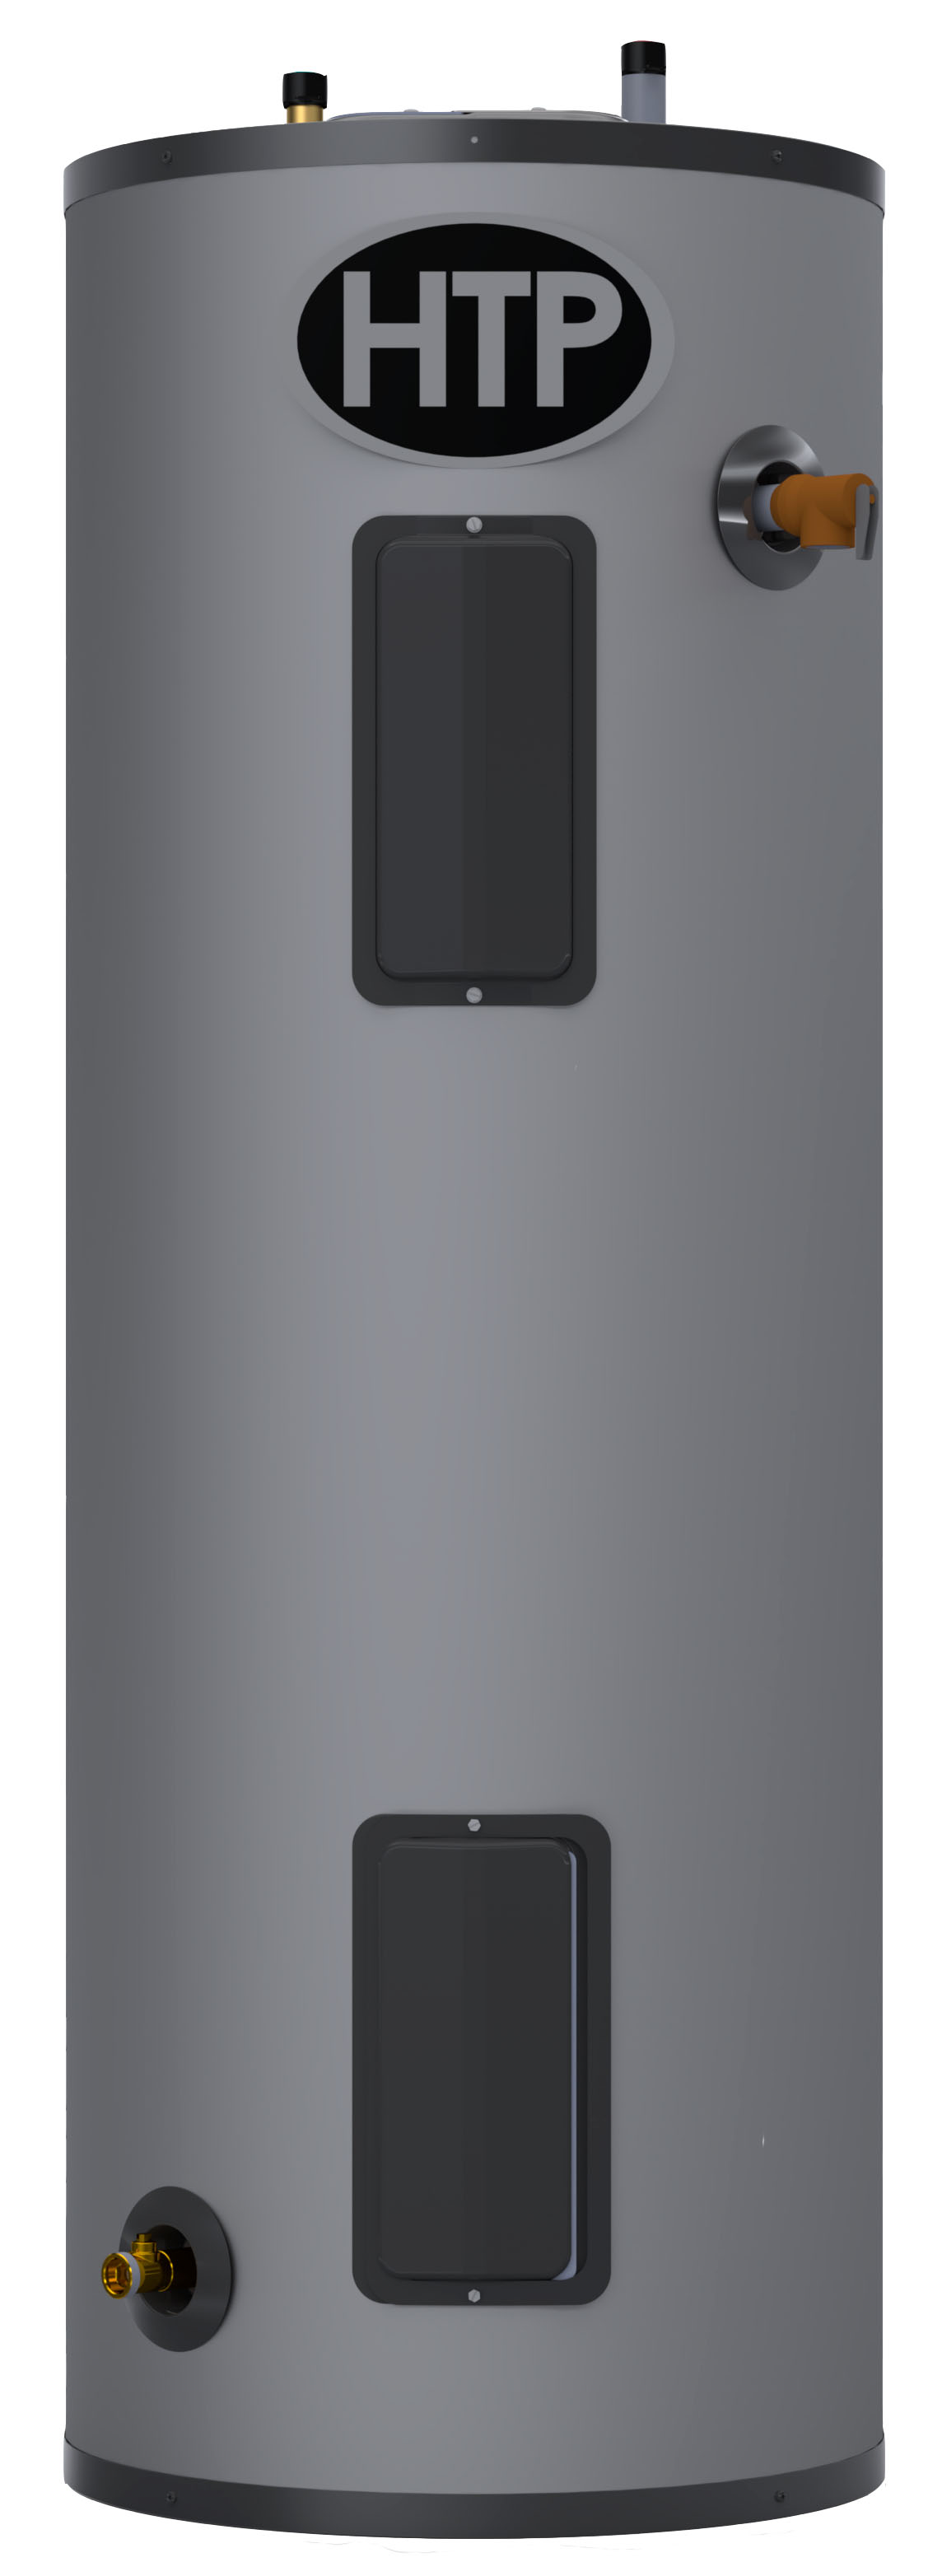 Everlast Residential Electric Water Heater